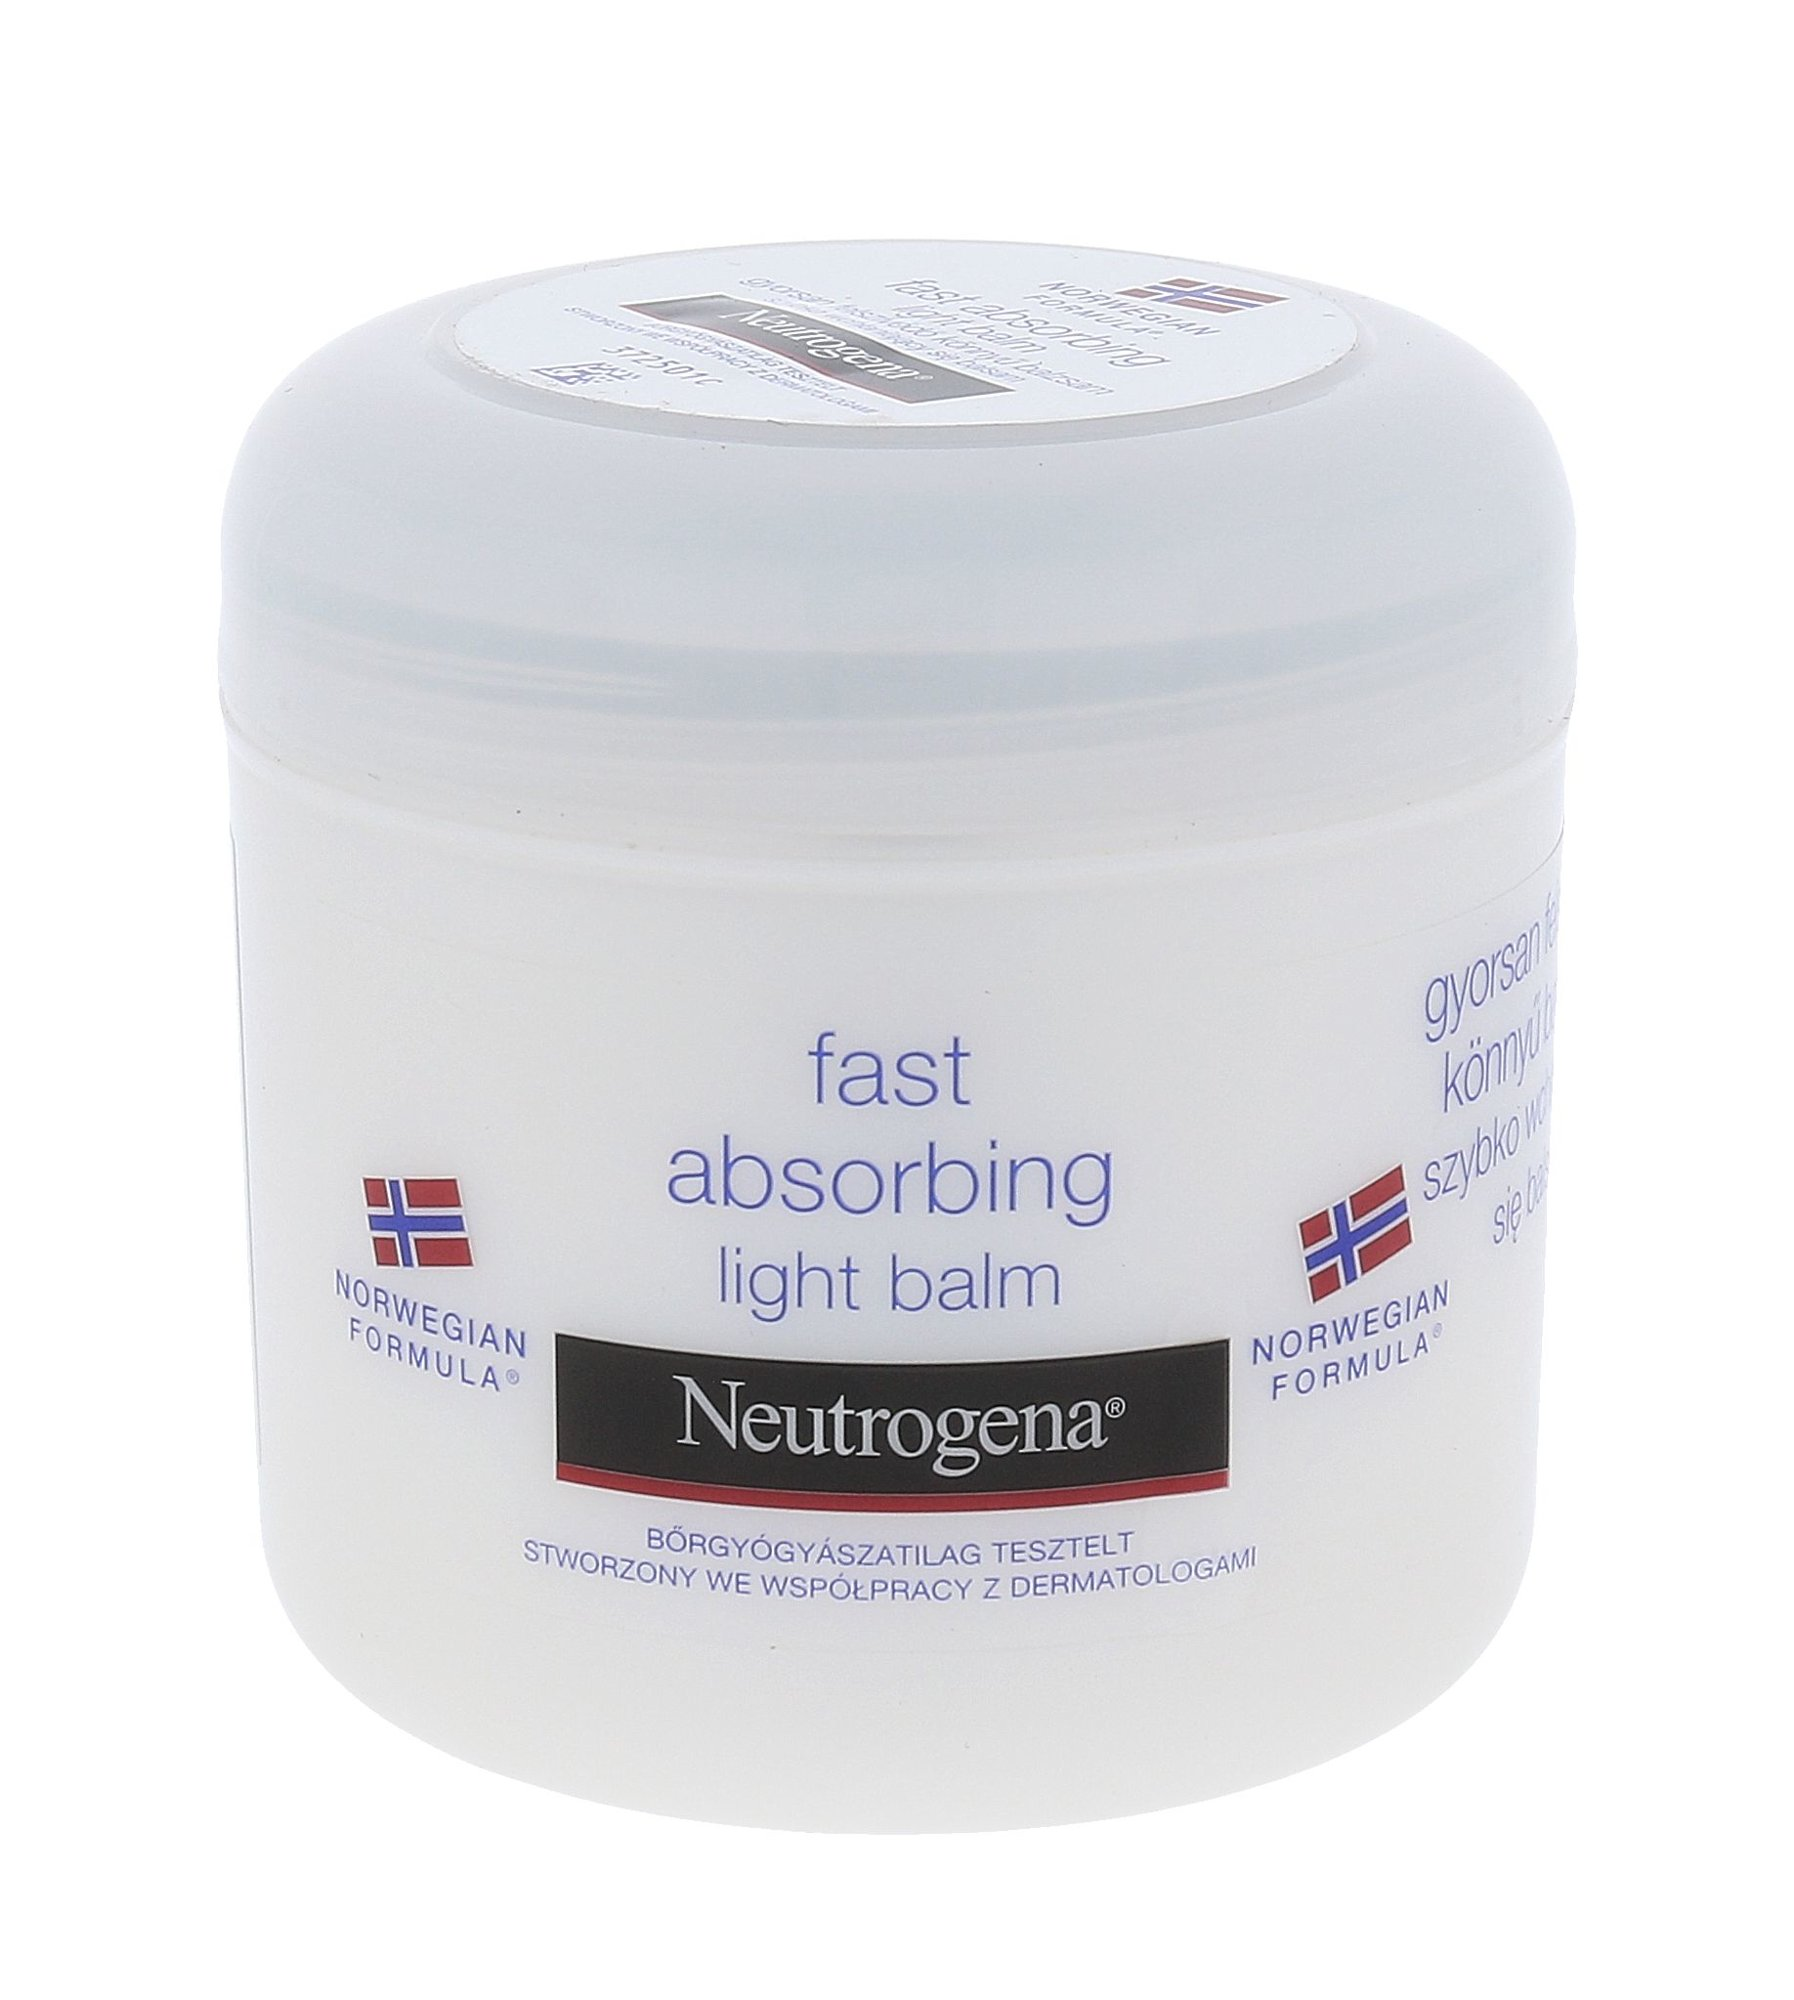 Neutrogena Norwegian Formula Cosmetic 300ml  Fast Absorbing